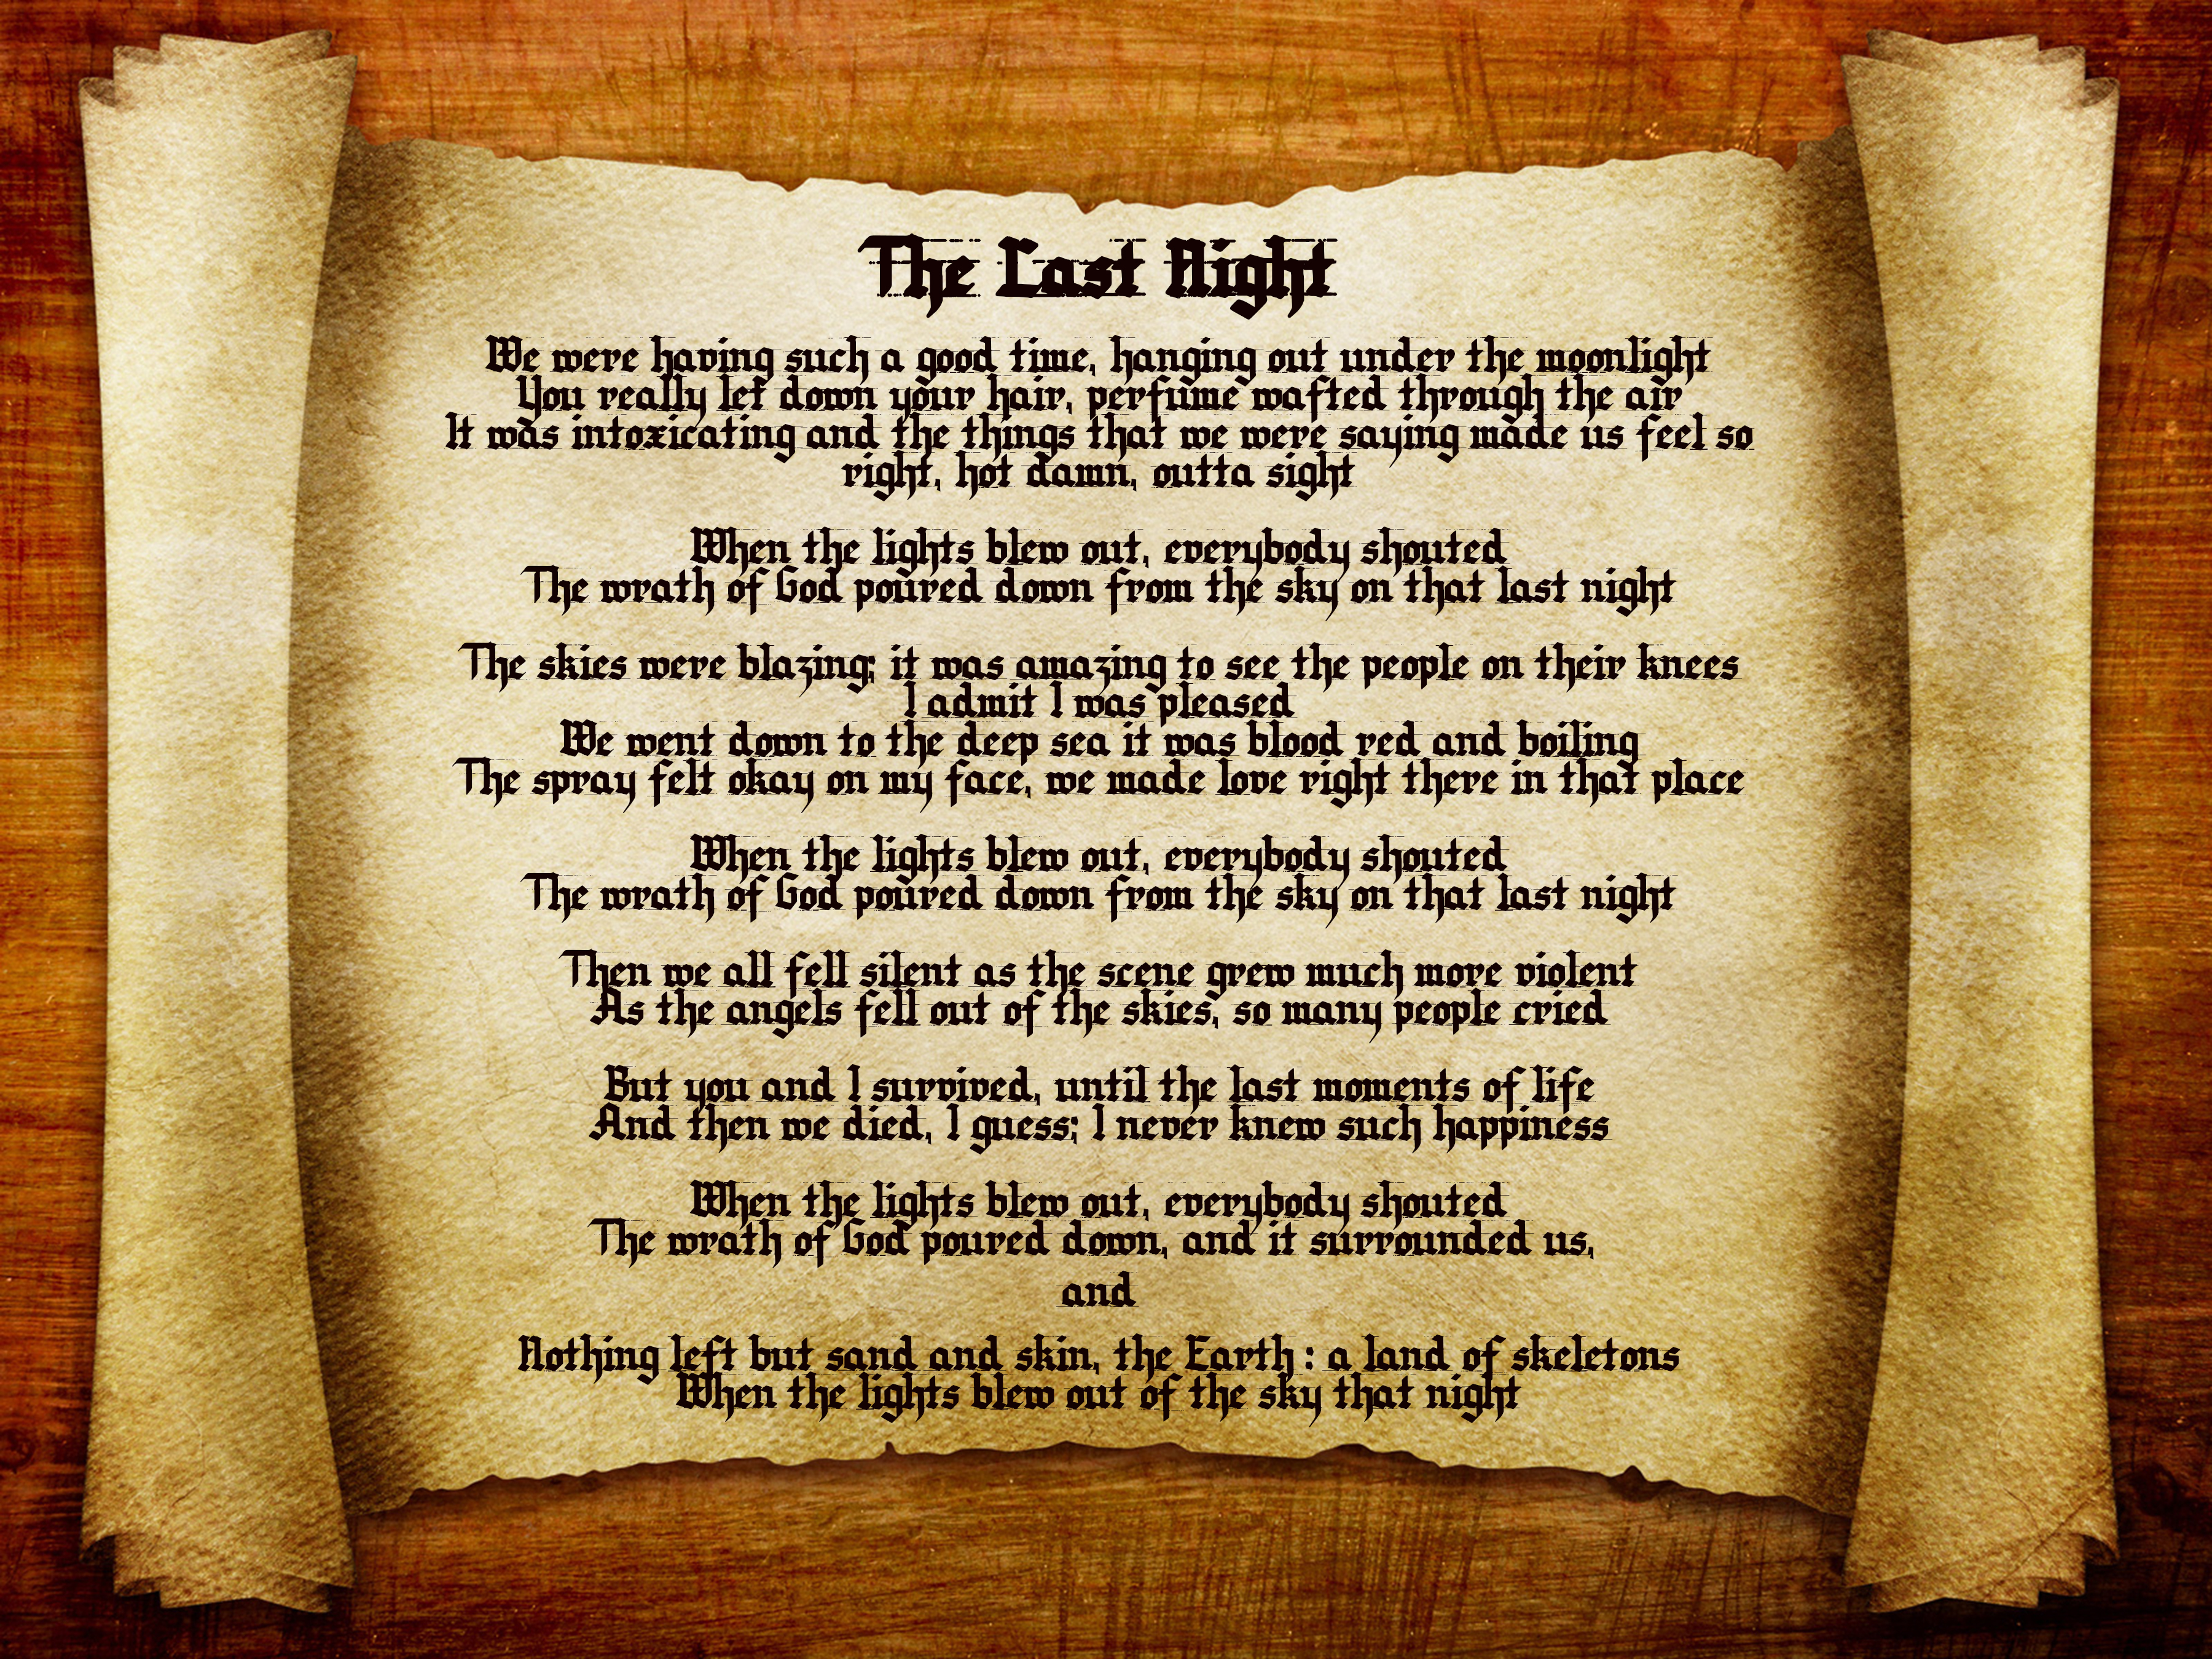 The Last Night scroll